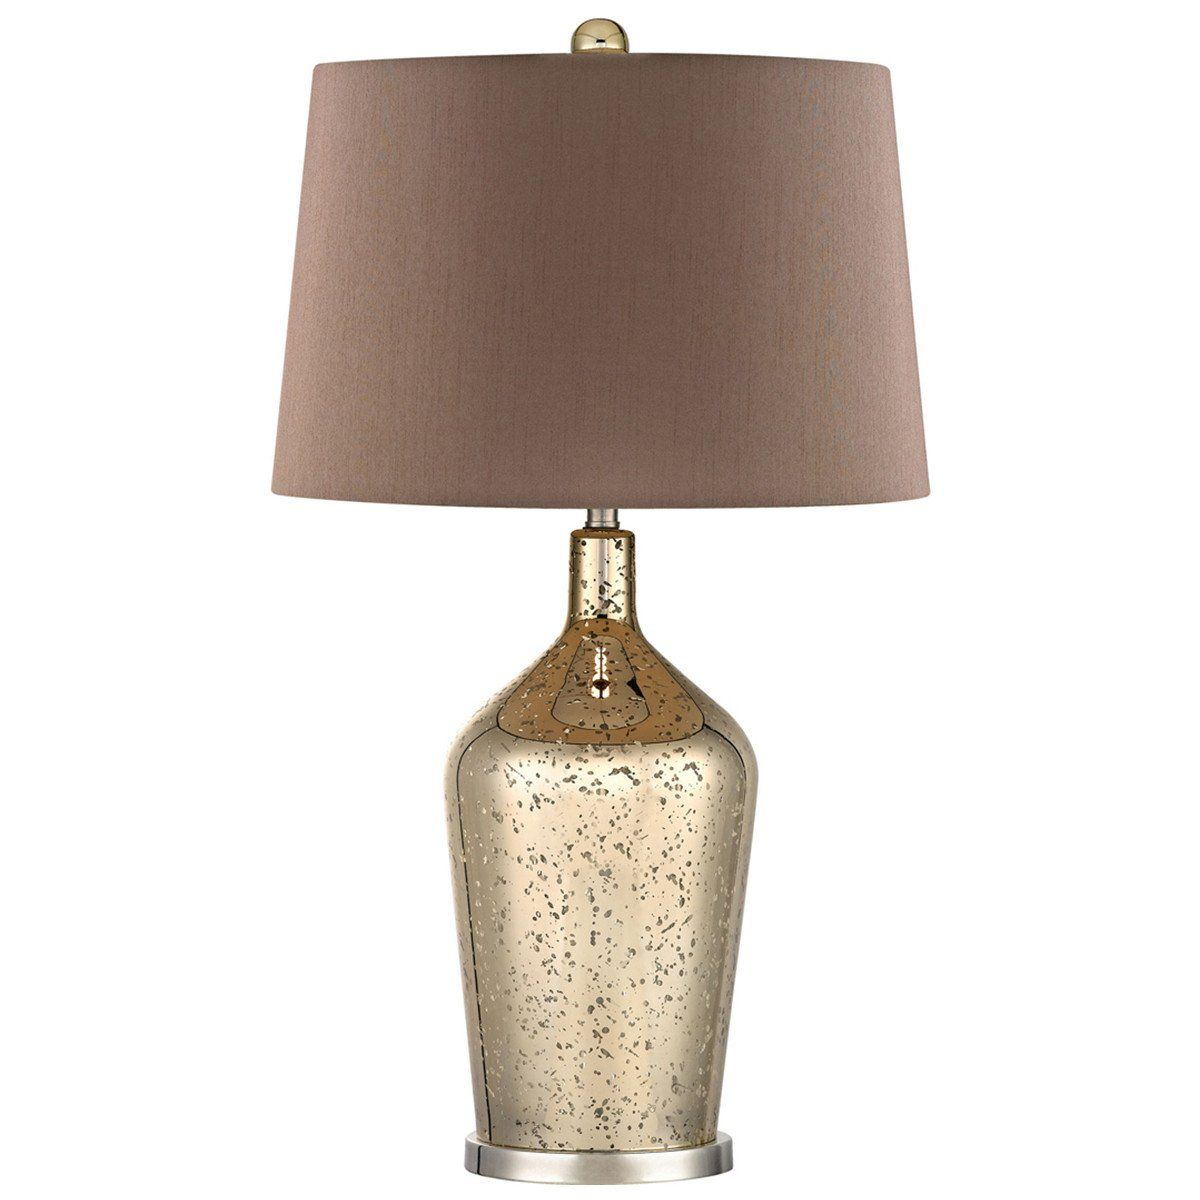 This Lamp Is Part Of A Collection That Is Relaxed Comfortable And